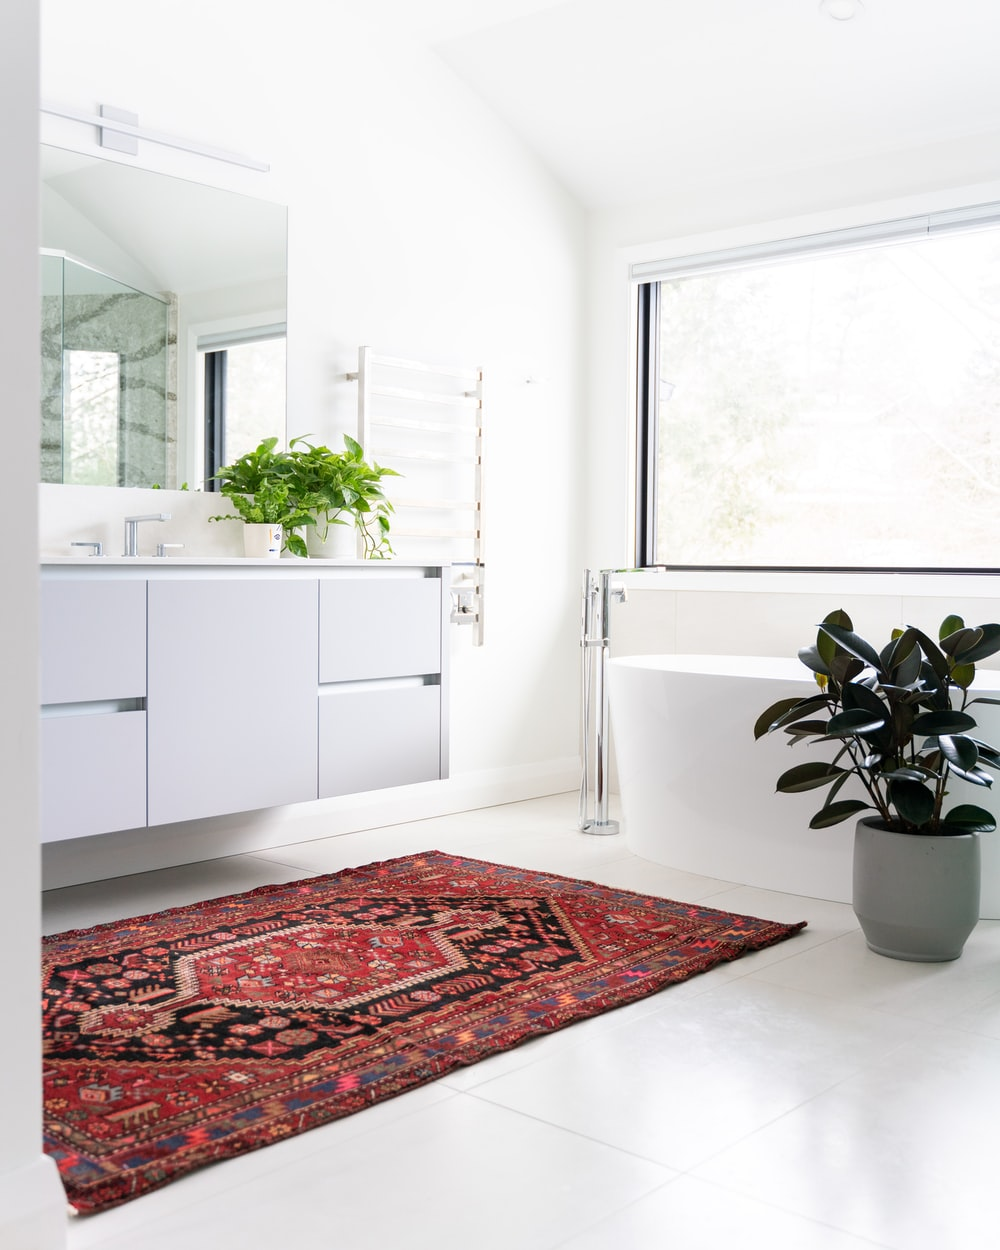 green potted plant on white wooden cabinet